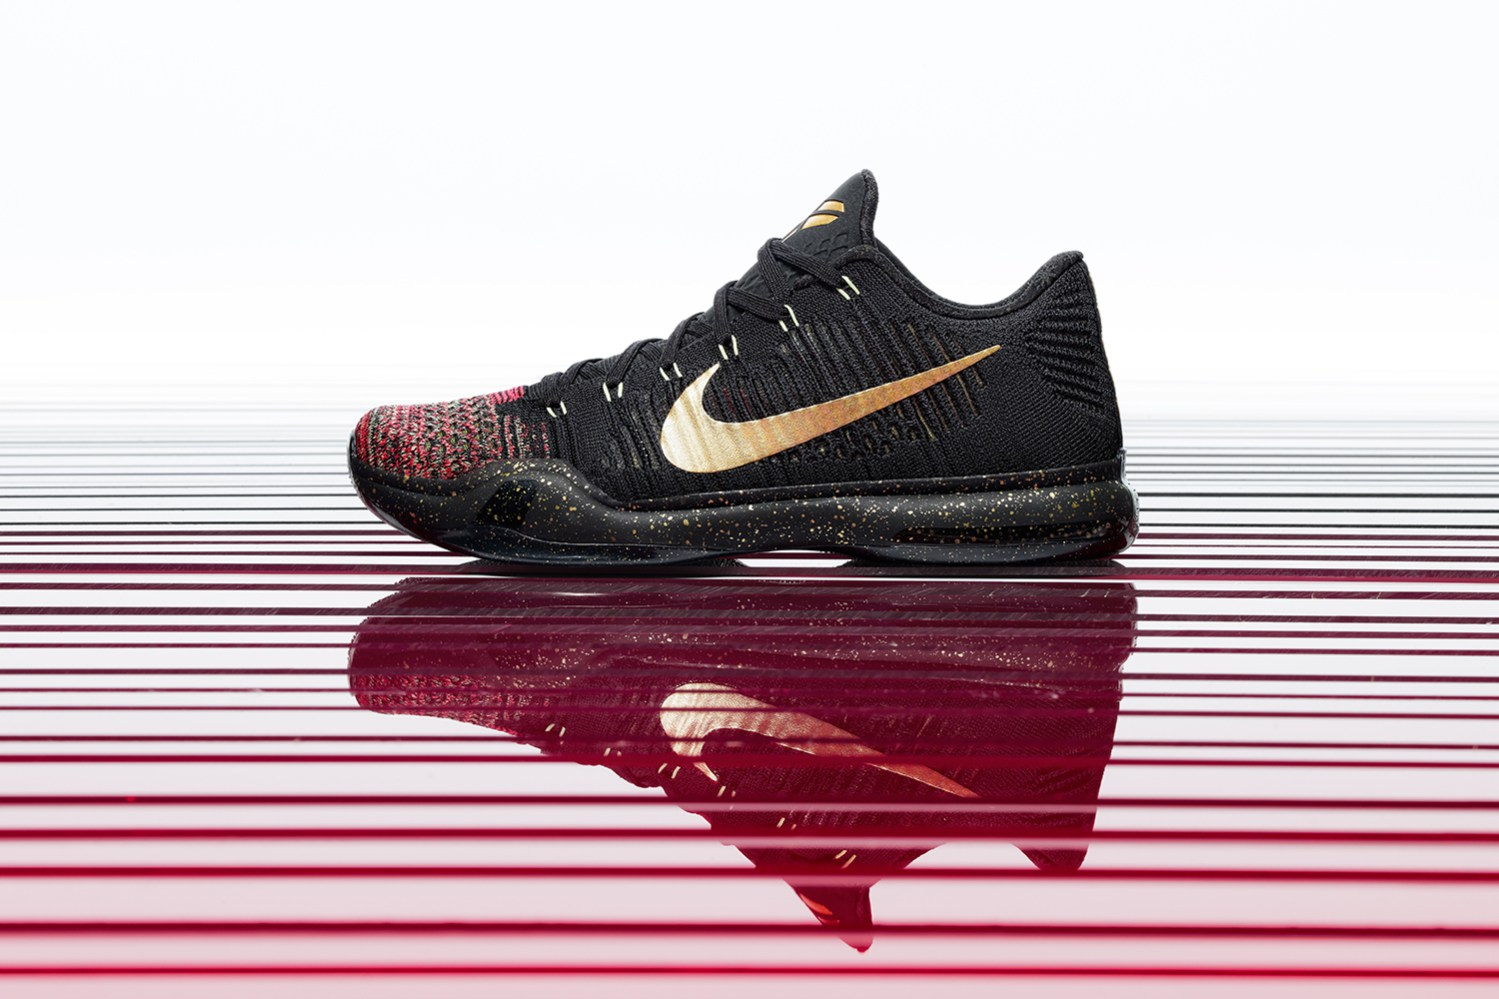 check out 93a6b 454c5 nike-basketball-2015-christmas-collection-4